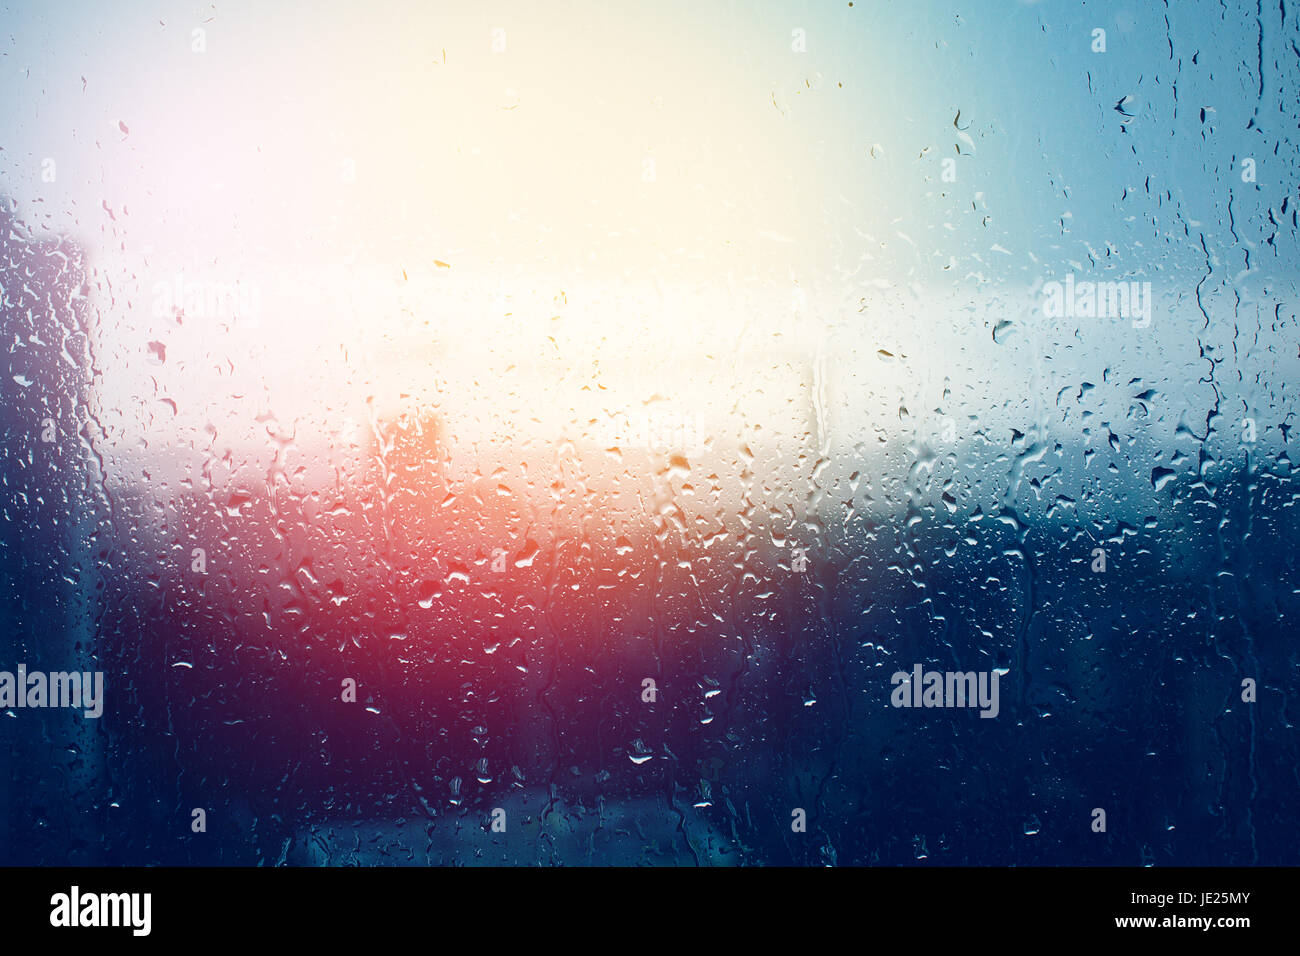 Raindrops on window glass surface, blurred city through window glass after rain - Stock Image